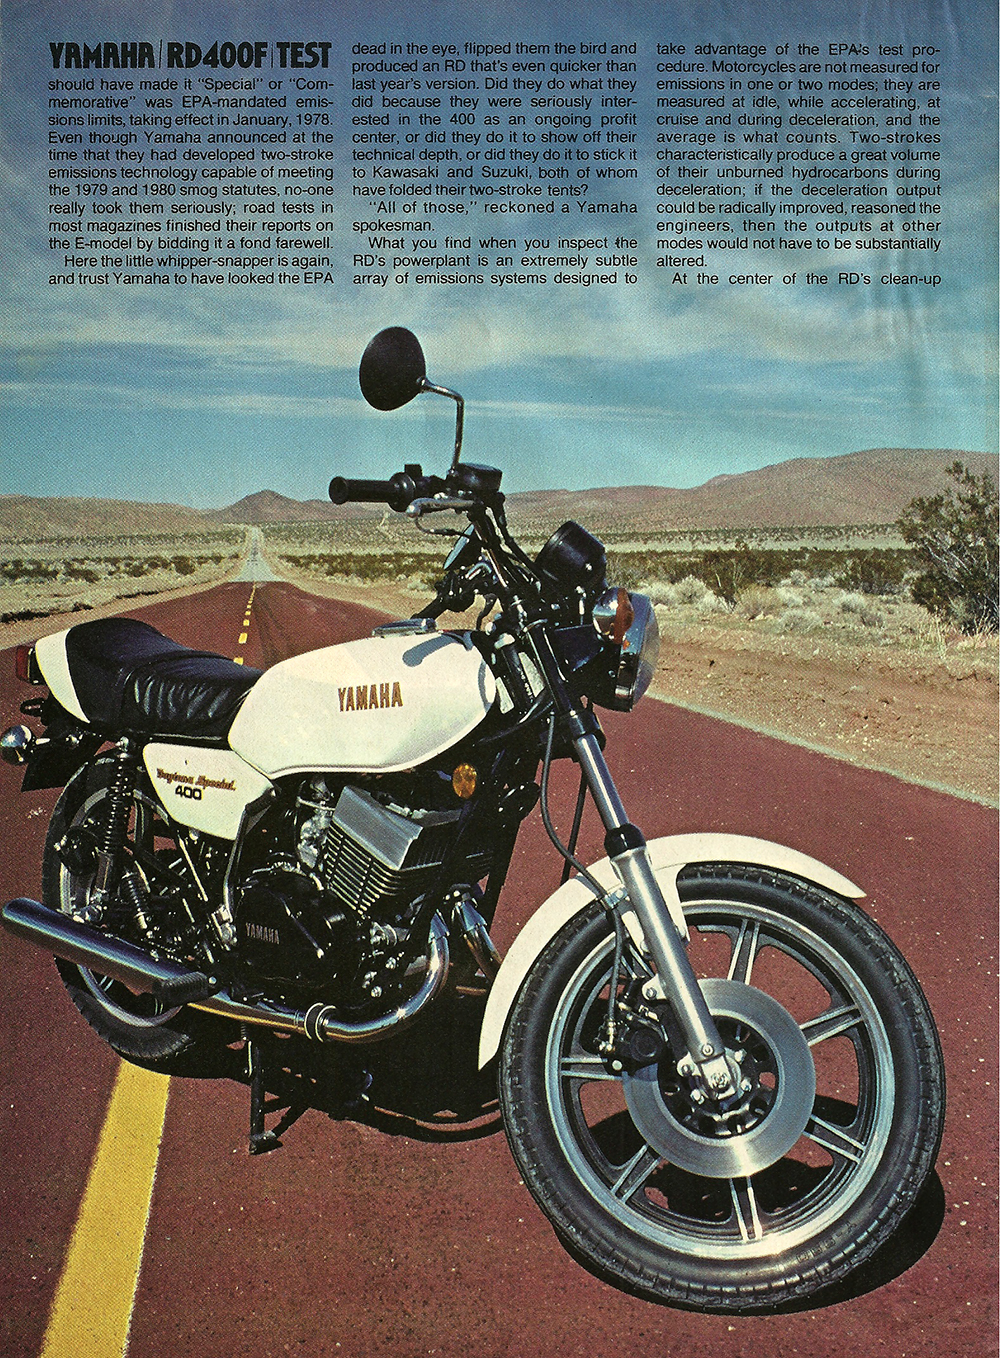 1979 Yamaha RD400F road test 03.jpg